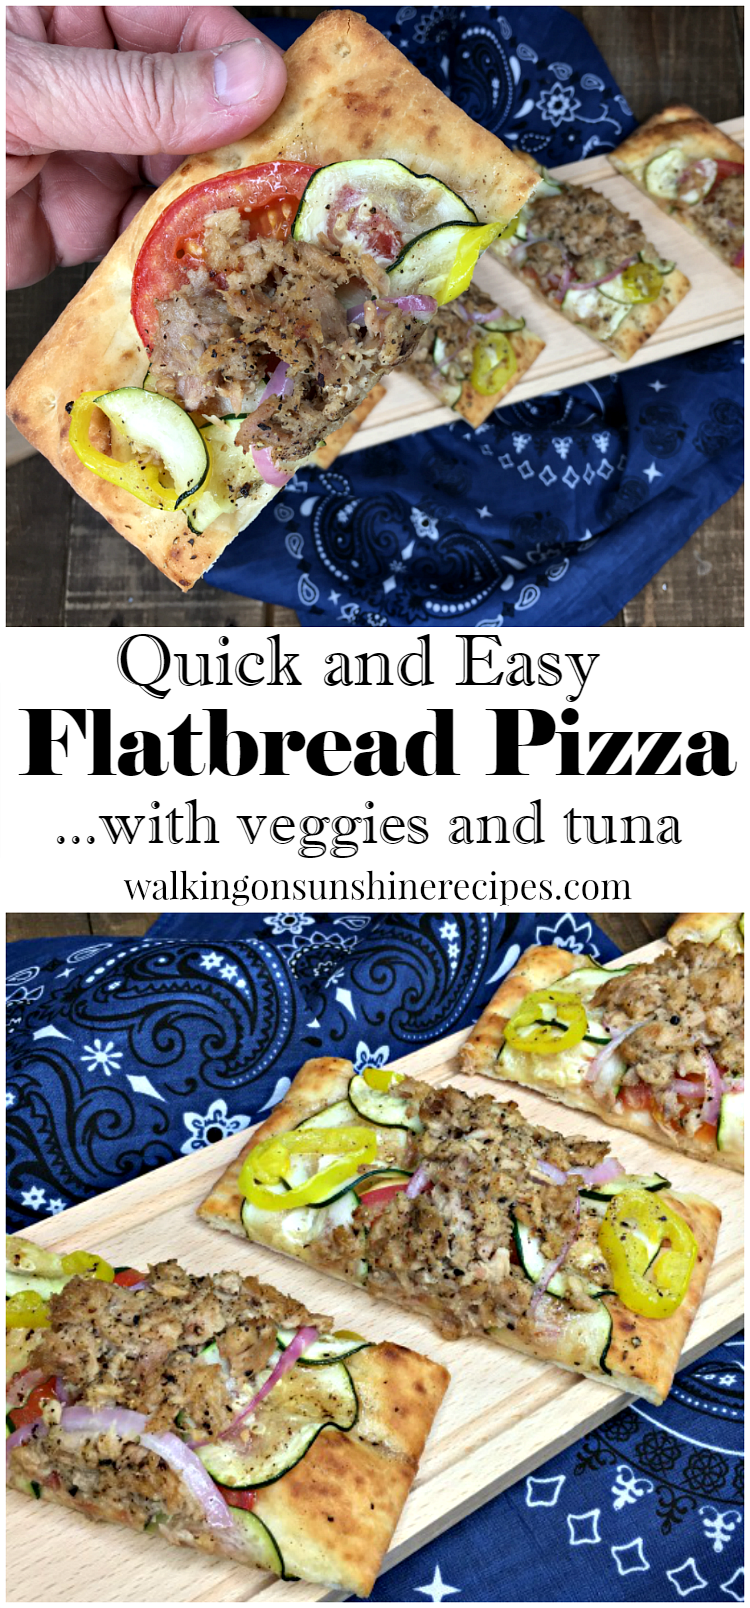 Quick and Easy Flatbread Pizza with Veggies and Tuna